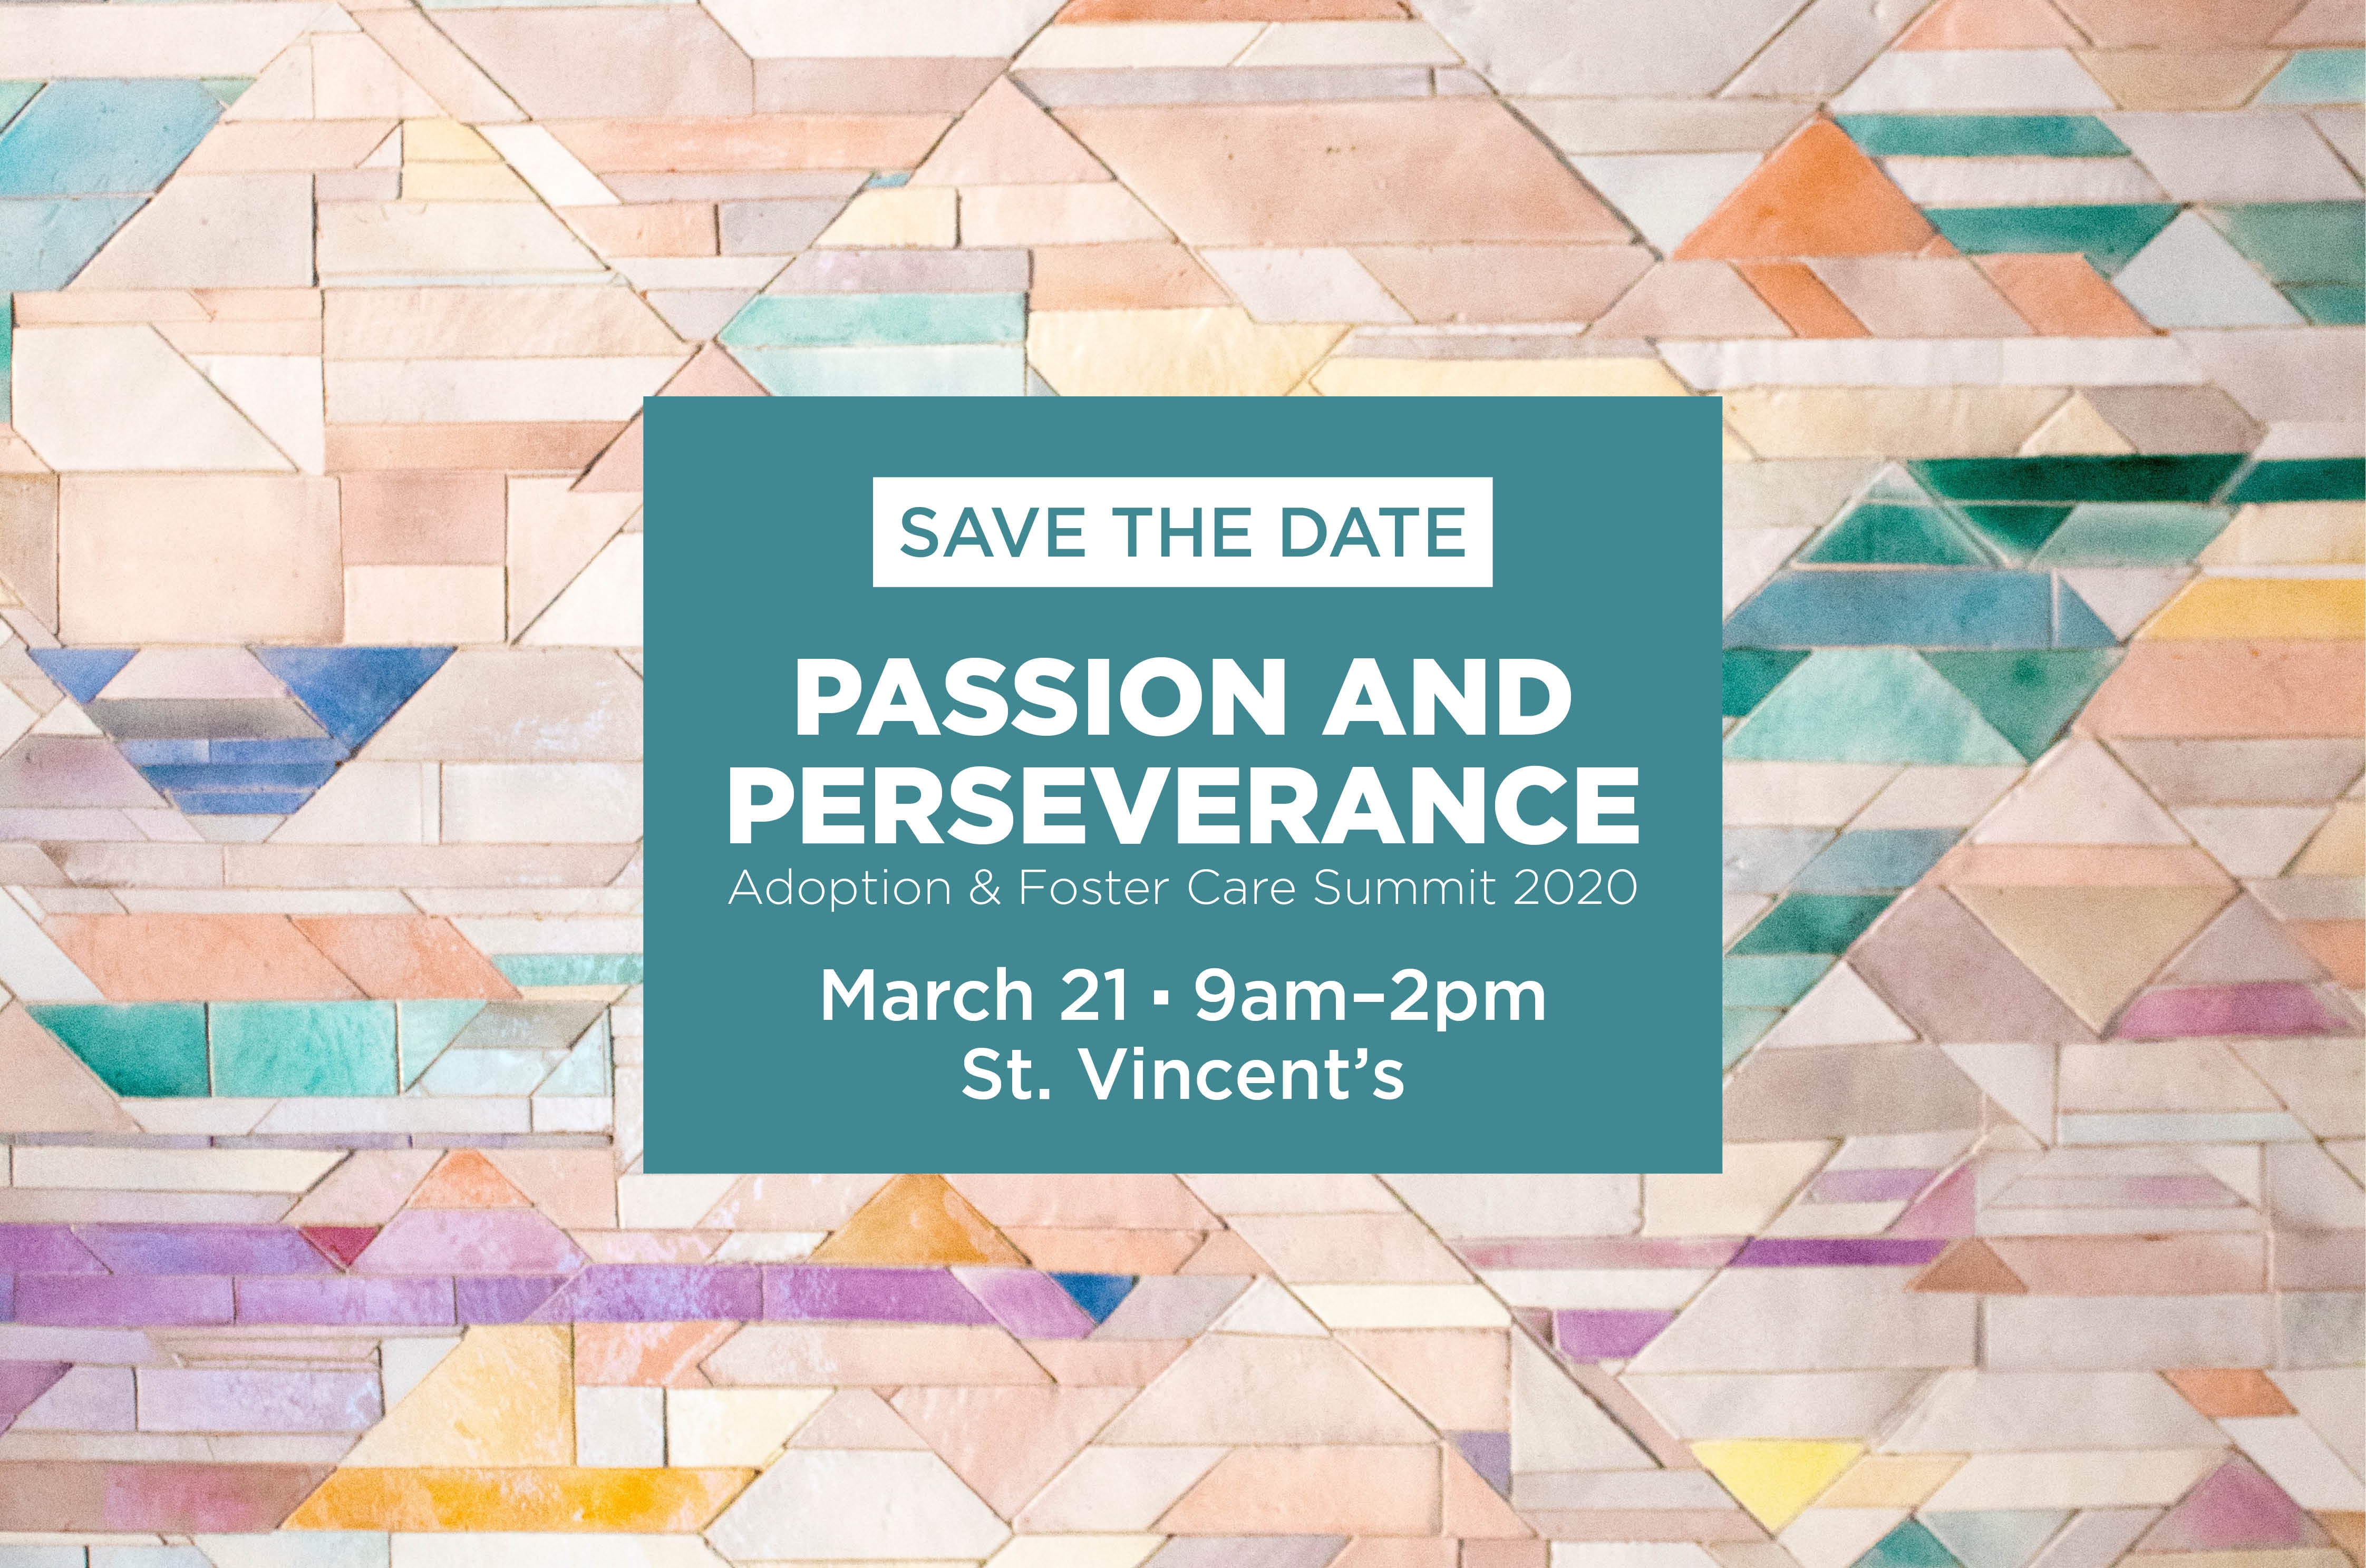 Passion & Perseverance: Adoption and Foster Care Summit